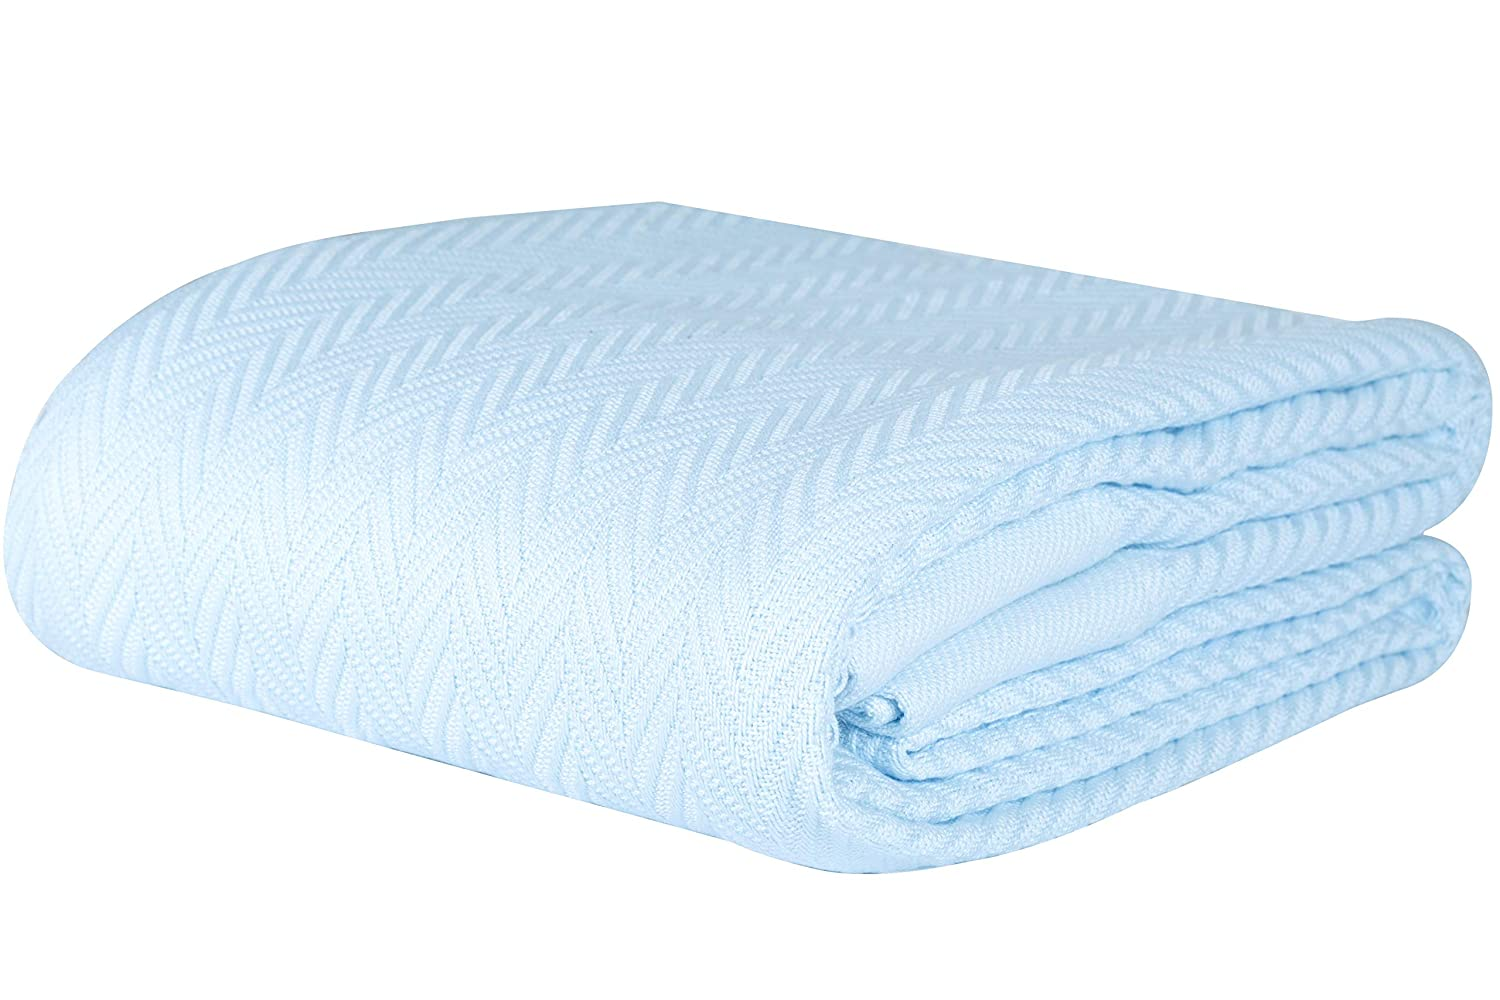 Threadmill Home Linen 100% Cotton Blanket Herringbone Soft Breathable King Size Blue